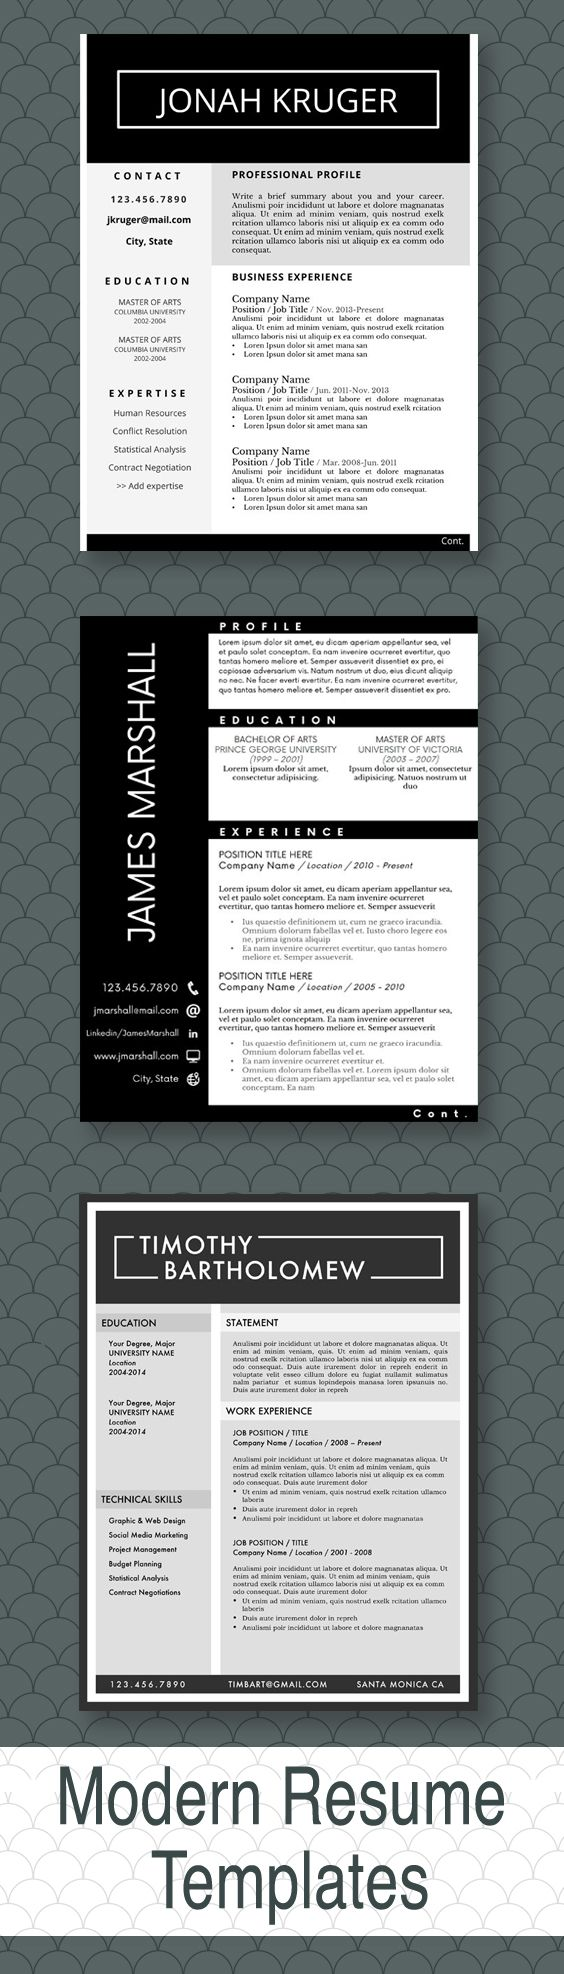 Modern Resume Templates for the Job Seeker